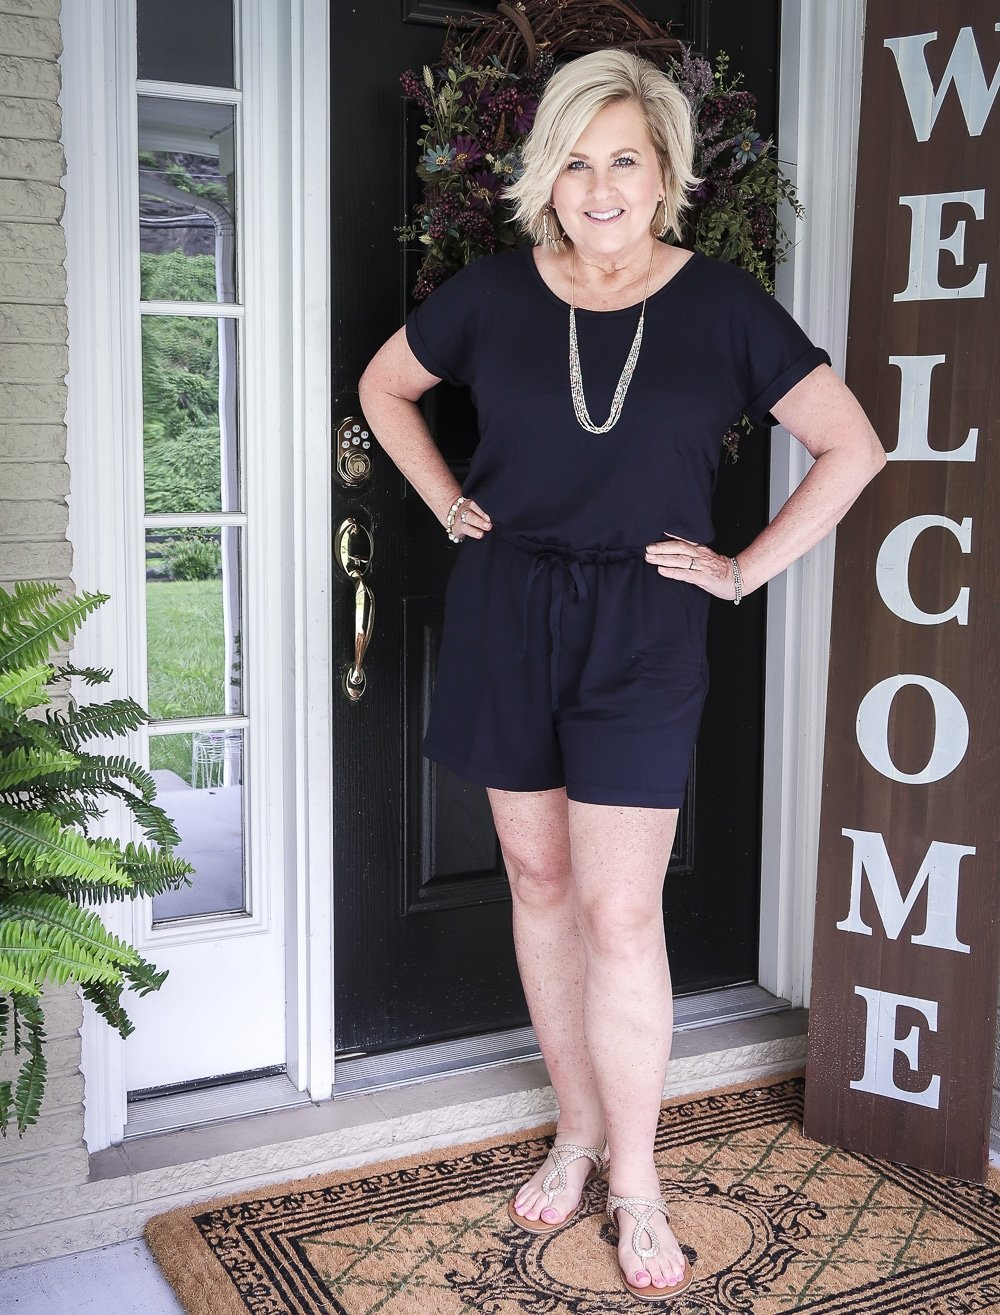 Fashion Blogger 50 Is Not Old is wearing a cute navy romper, gold braided sandals, and gold jewelry